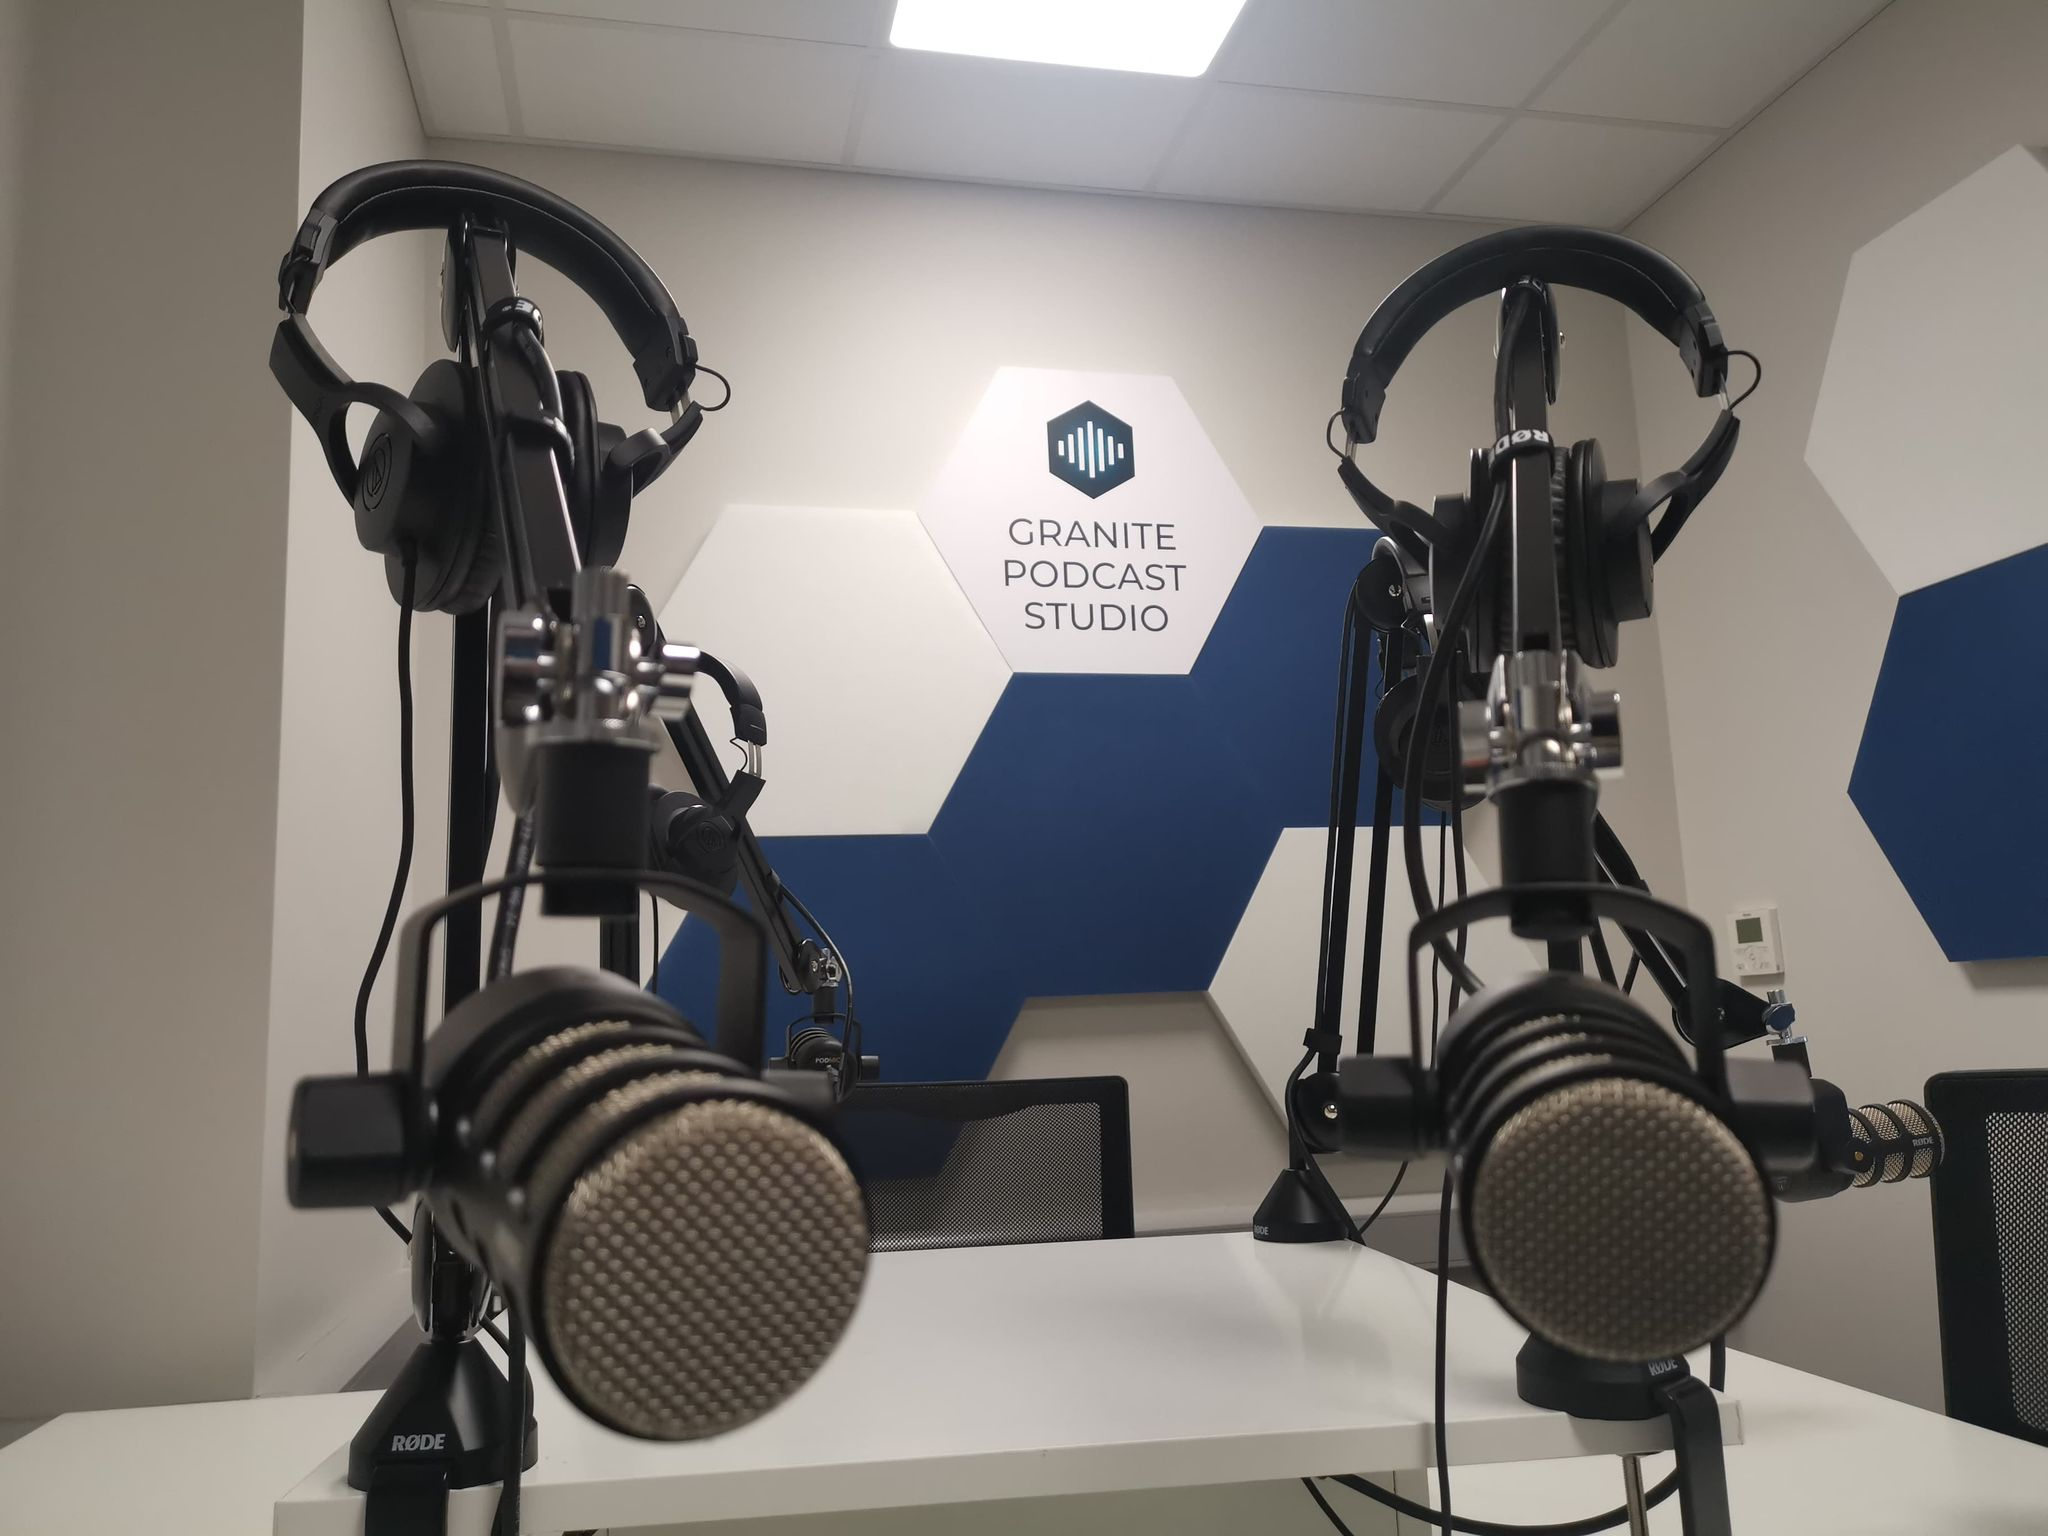 Granite Podcast Newry, located in Granite Exchange, NI Business Podcasting - Newry business news